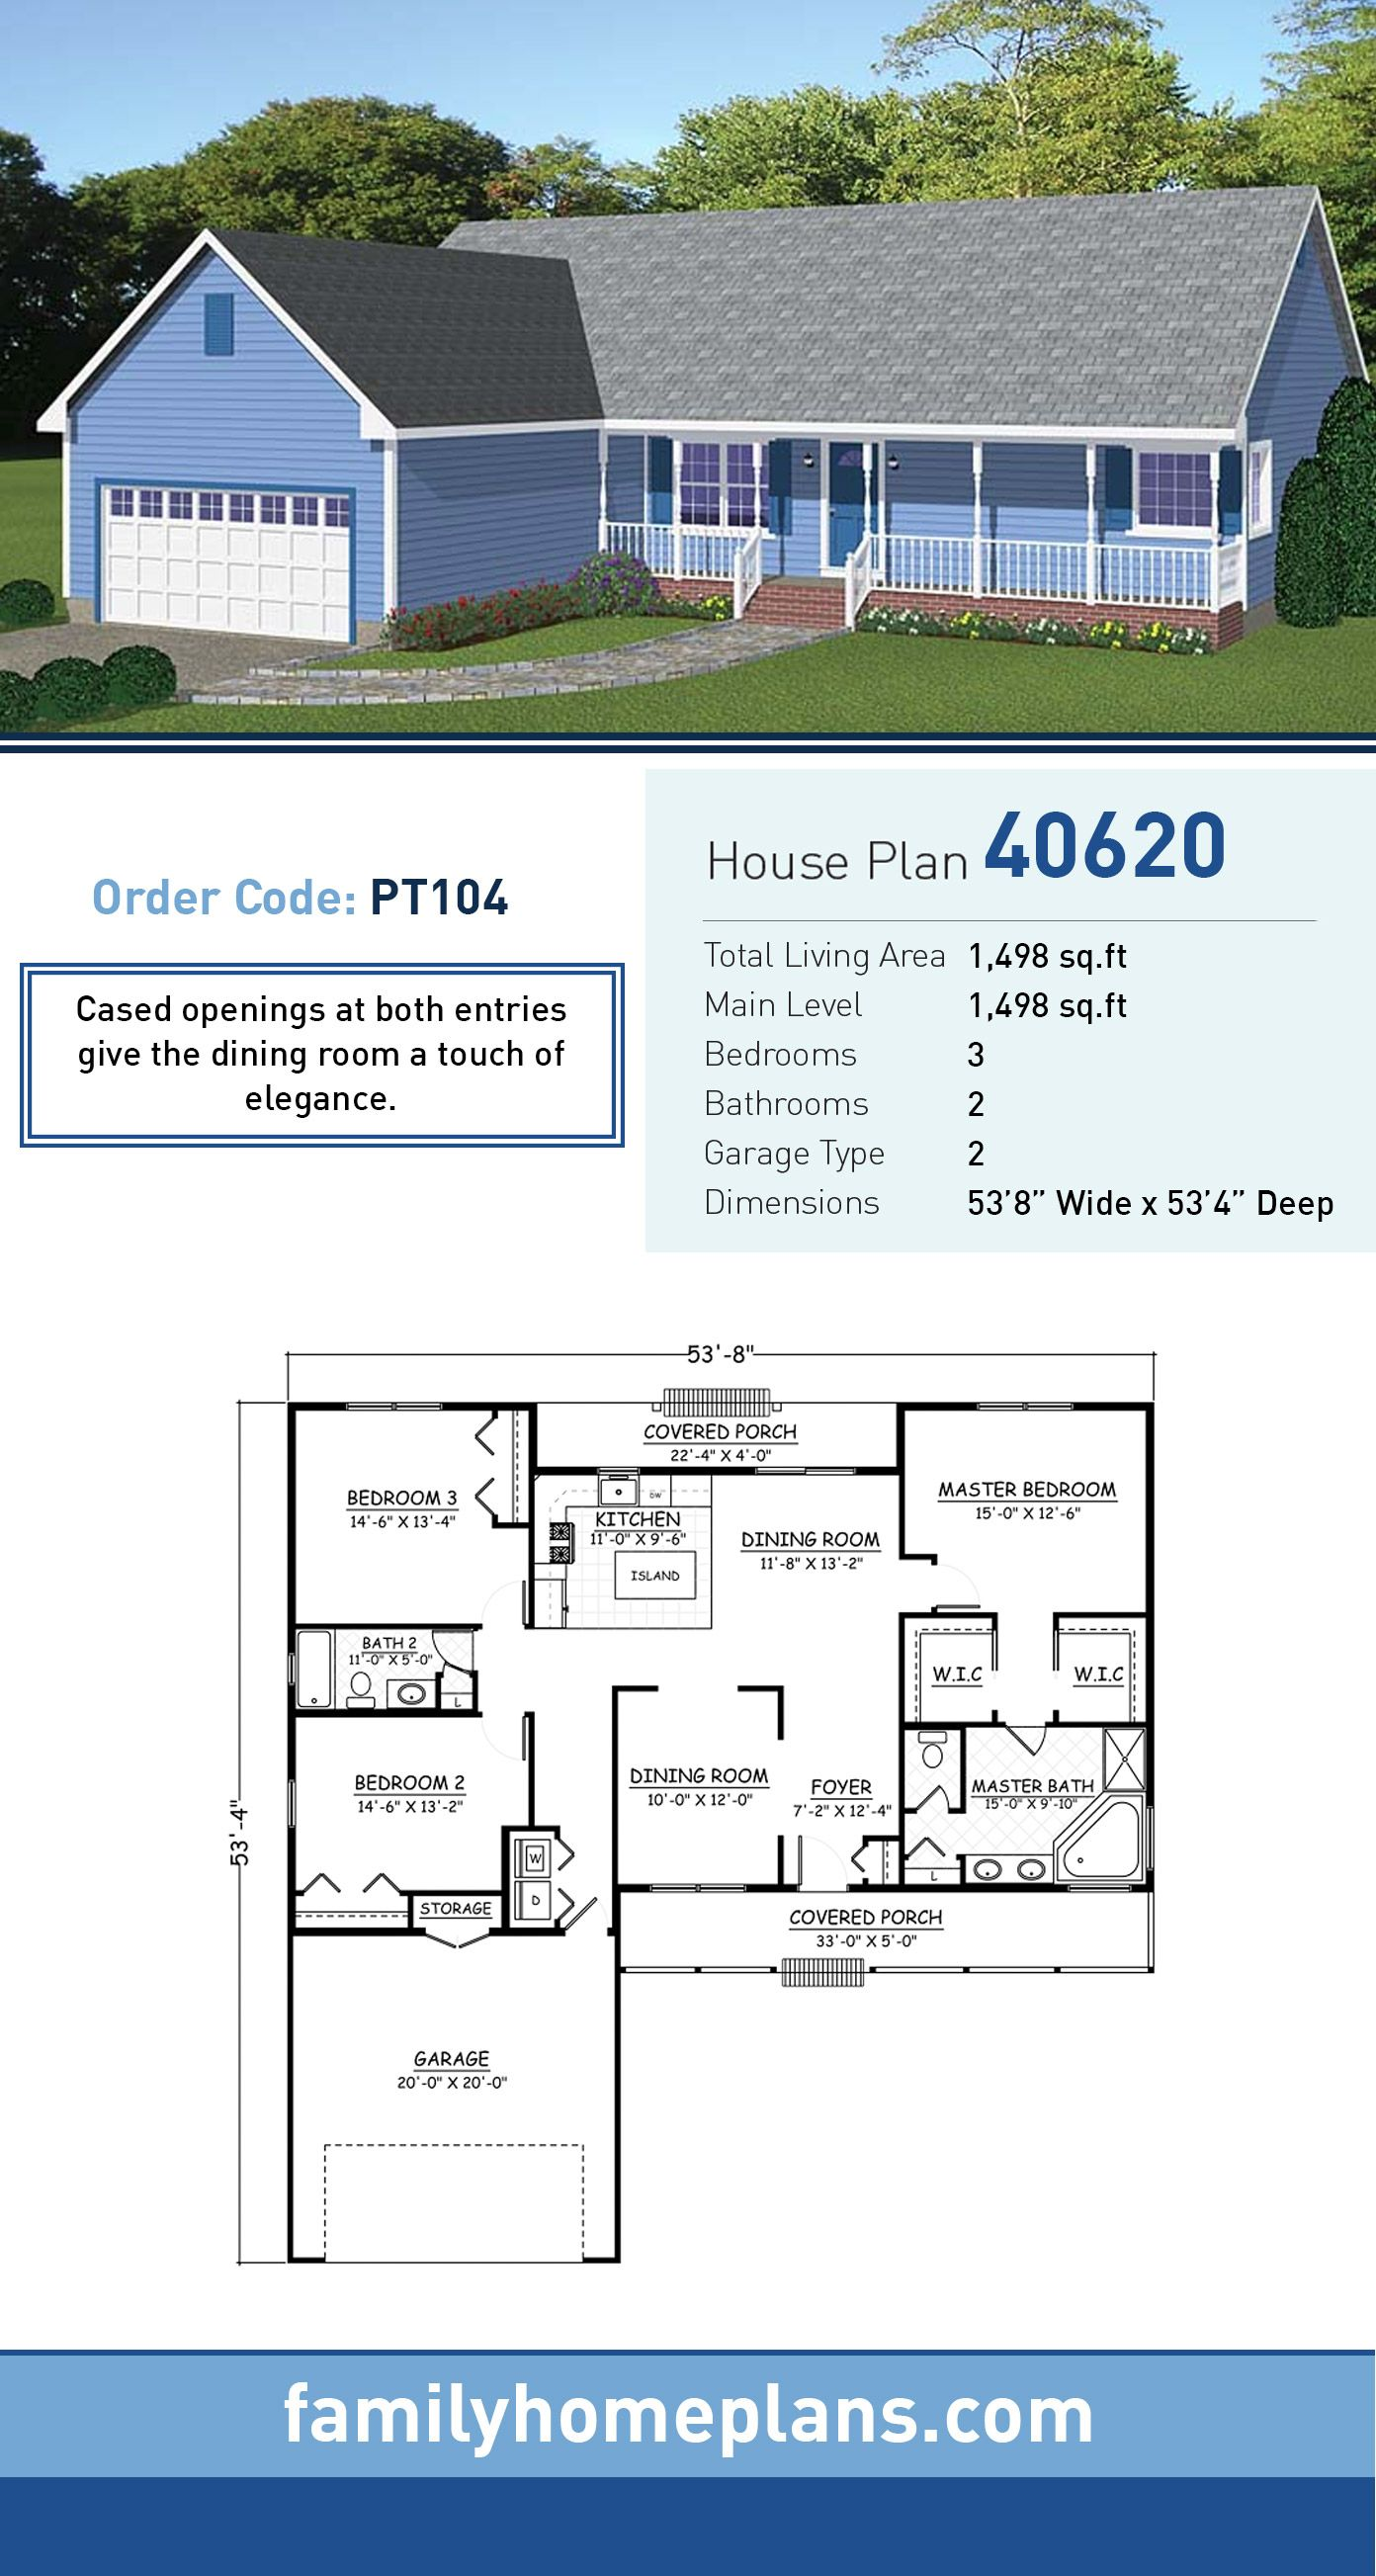 Ranch Style House Plan 40620 With 3 Bed 2 Bath 2 Car Garage House Plans Ranch Style House Plans Ranch House Plan